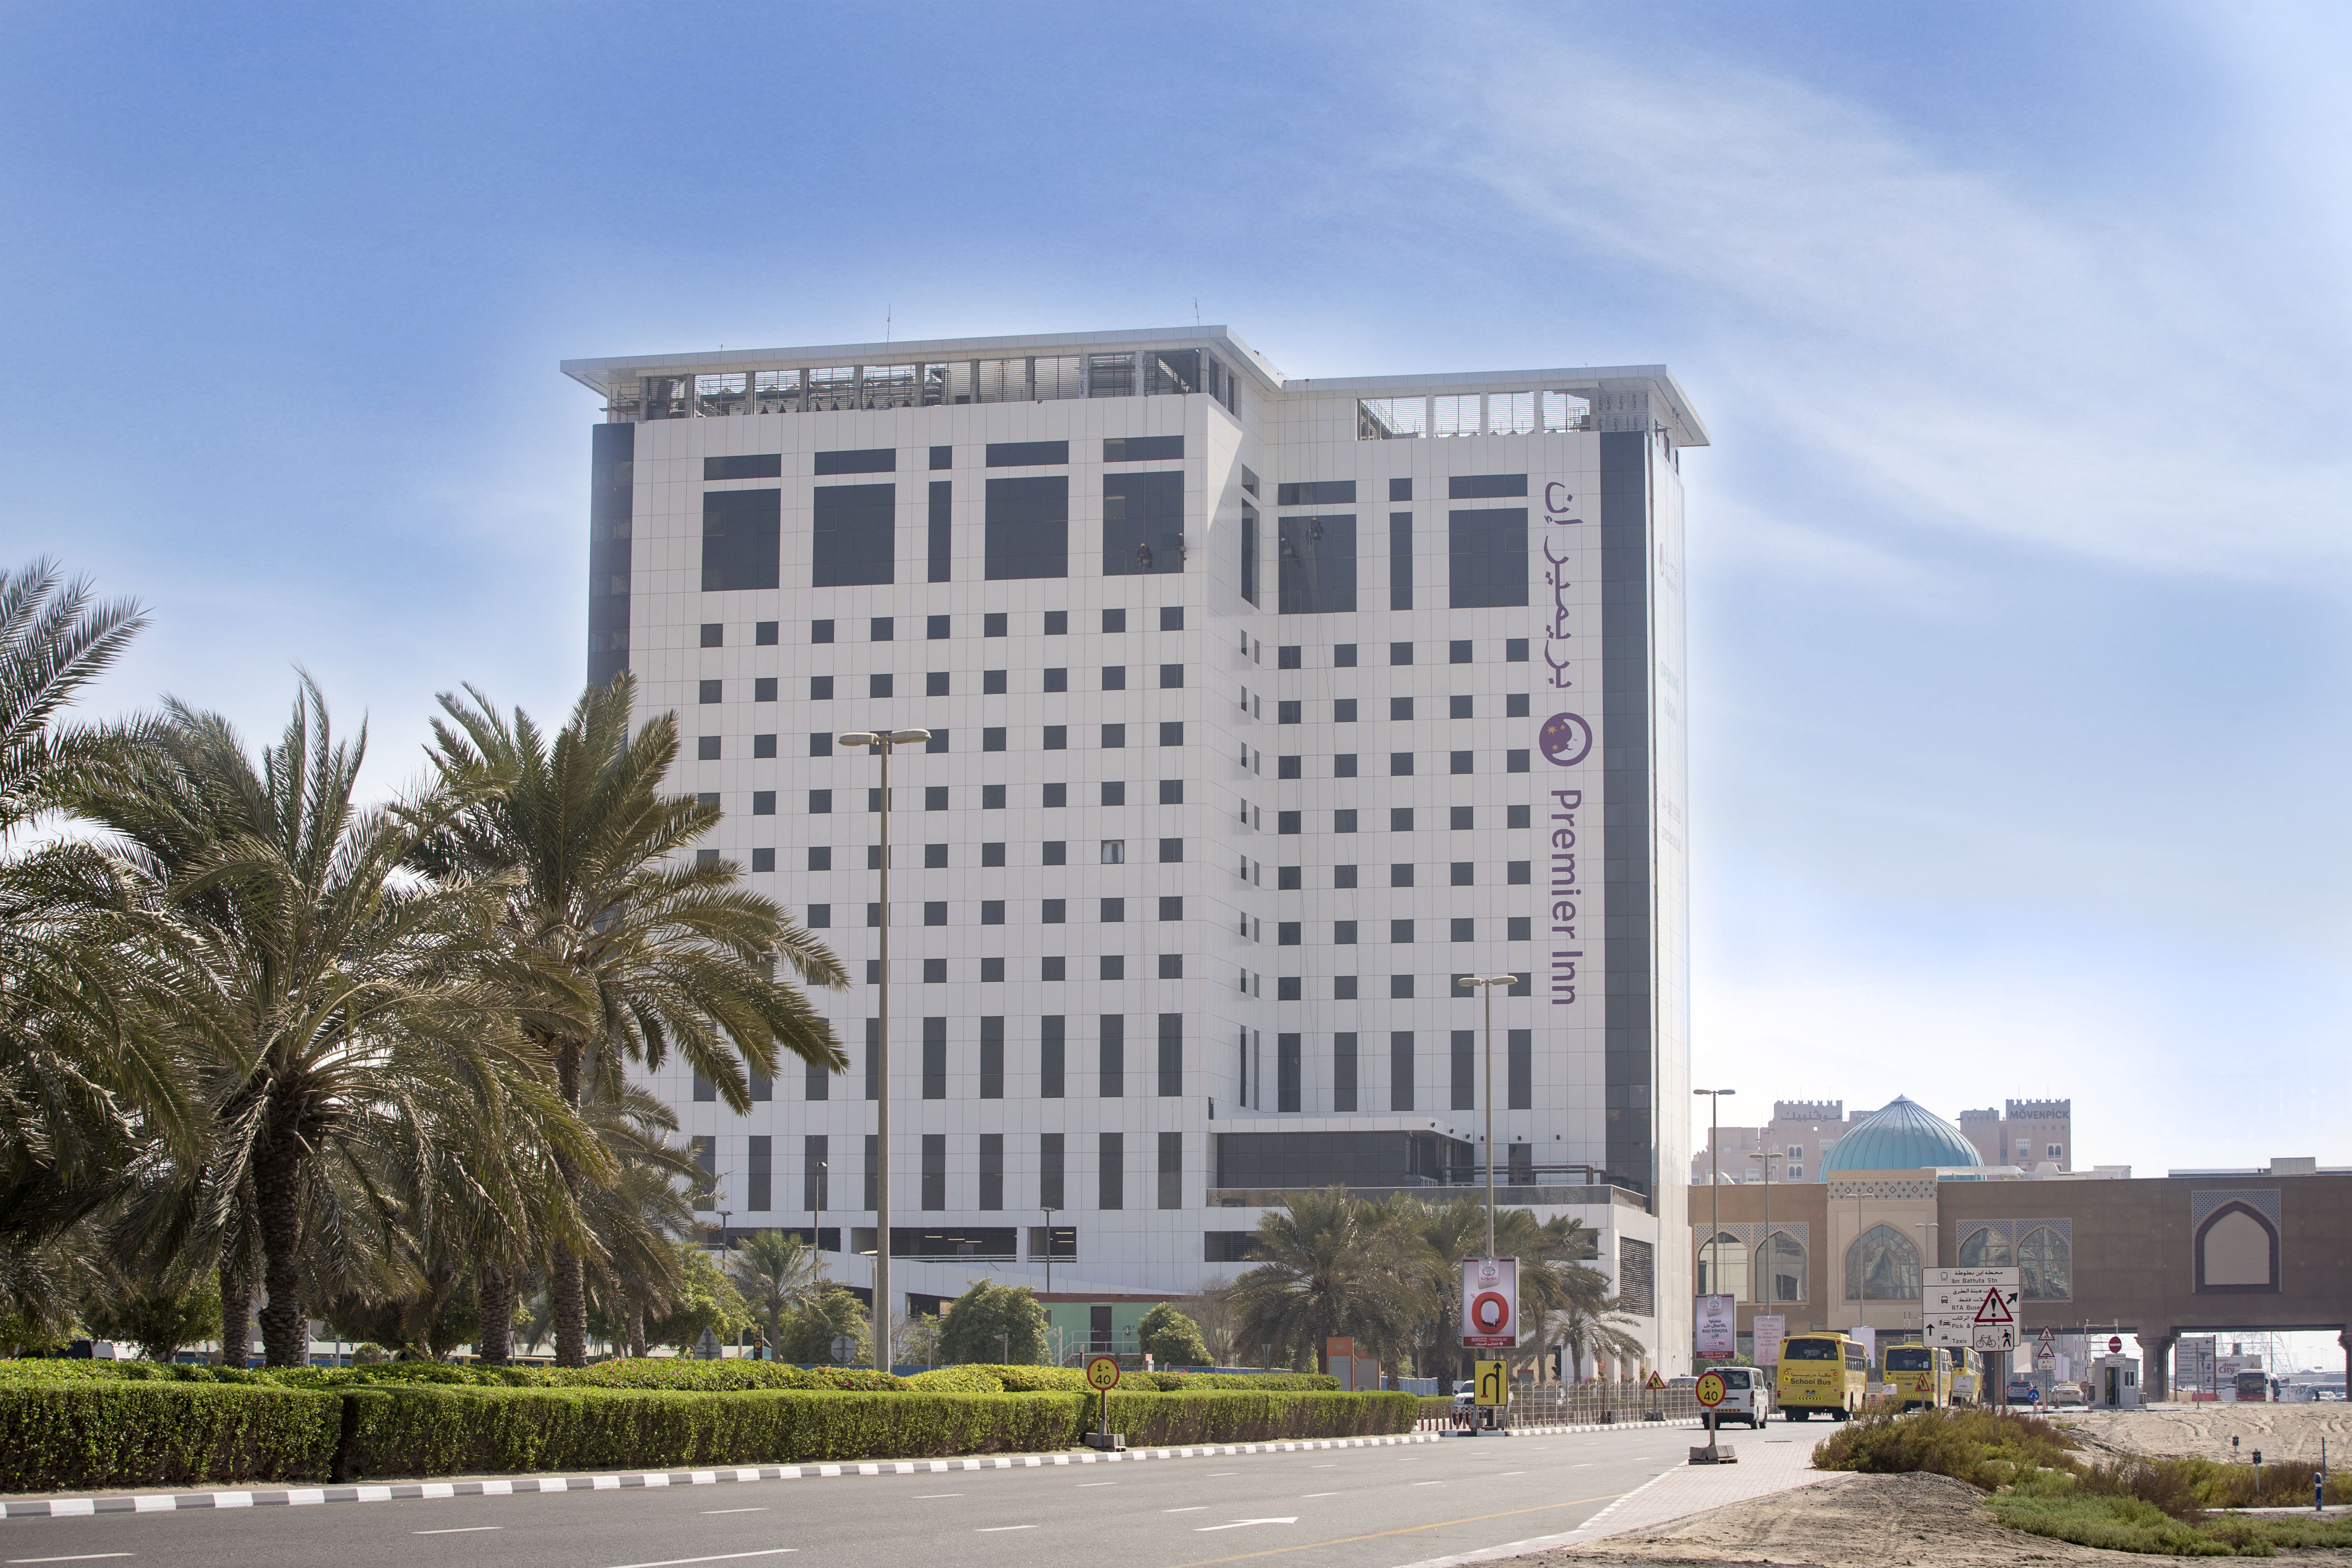 Premier Inn at Ibn Battuta Mall